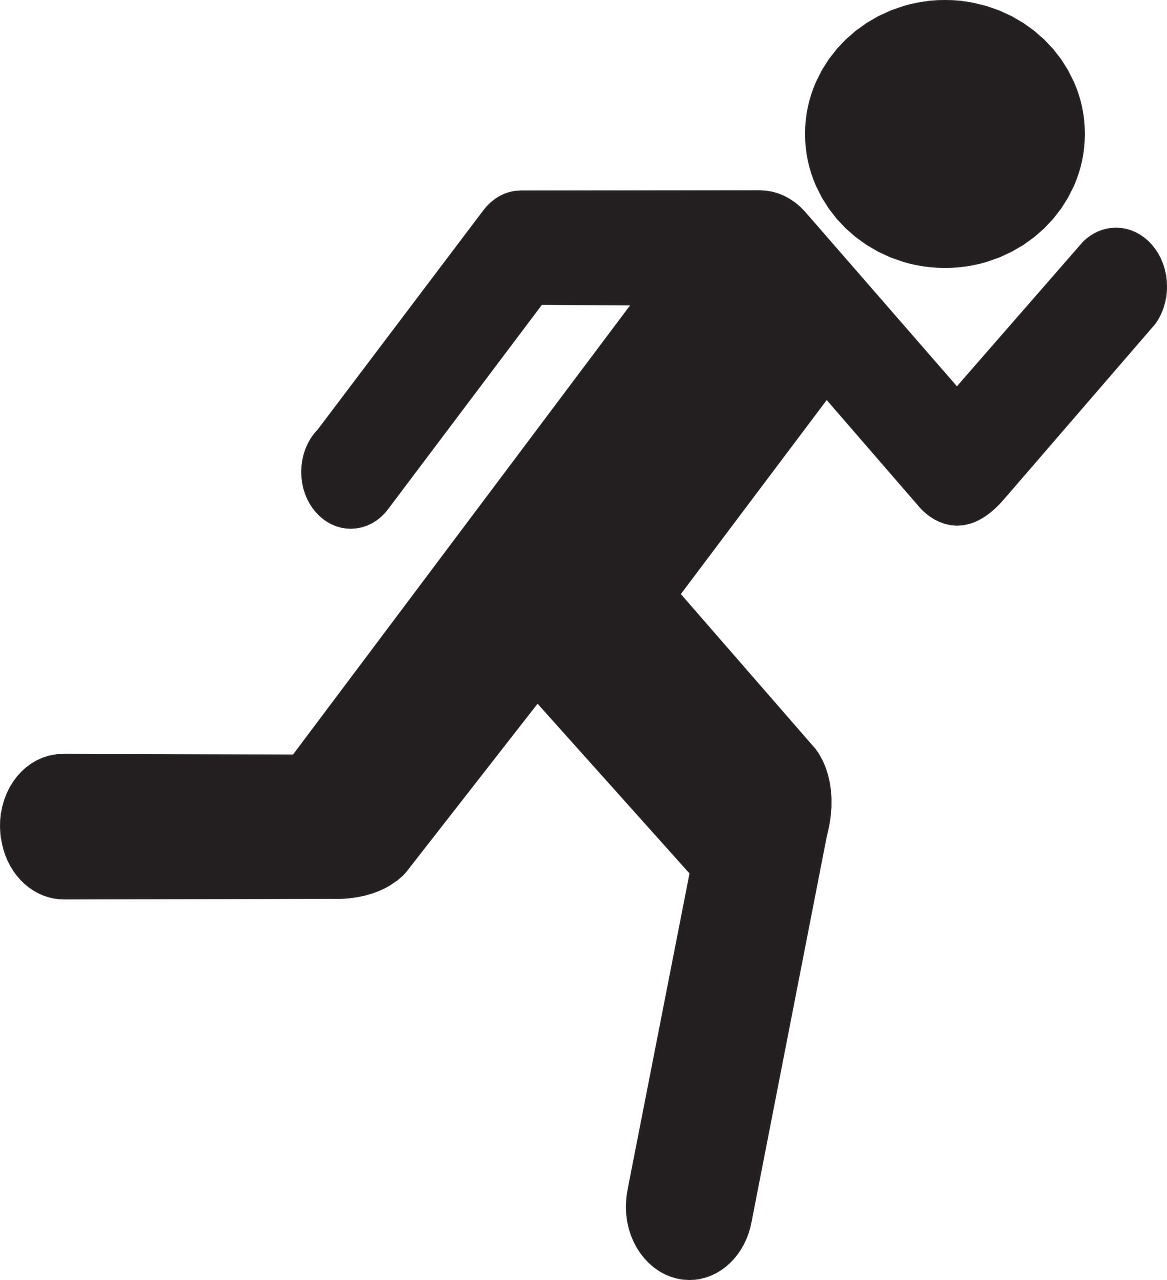 file runner stickman png wikimedia commons man silhouette vector side man standing silhouette vector